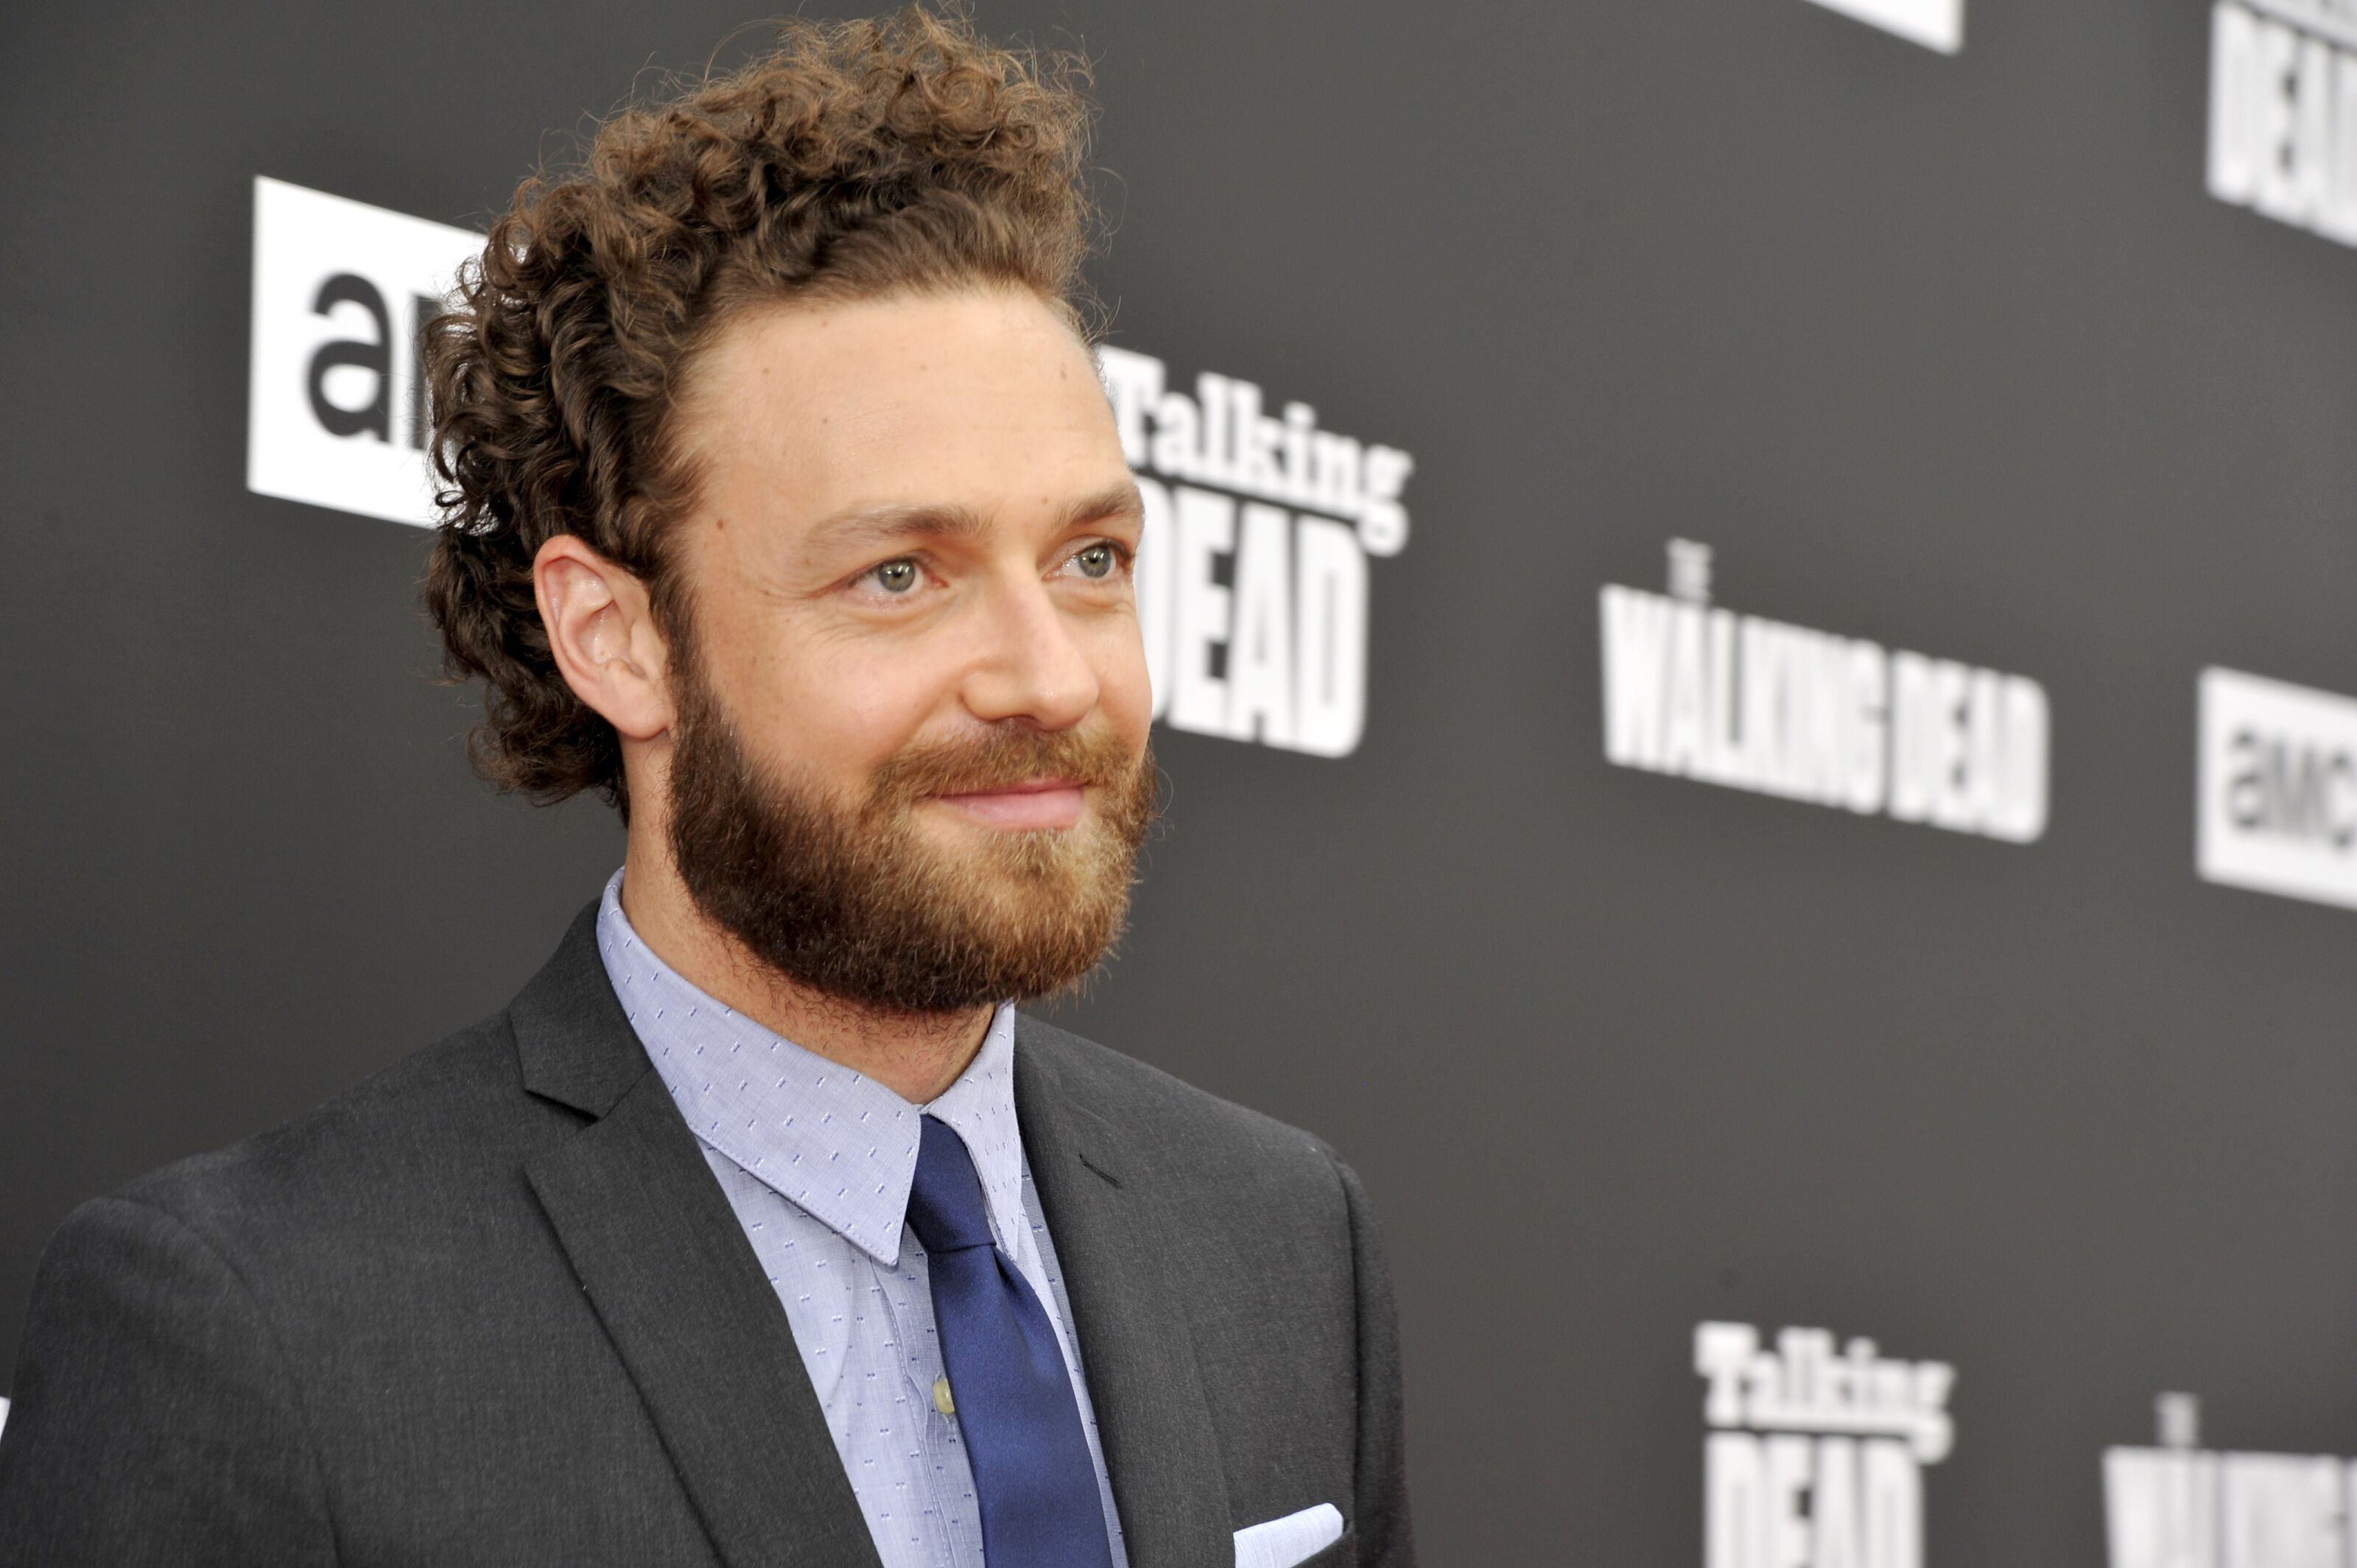 Ross Marquand of The Walking Dead cast as another Marvel villain